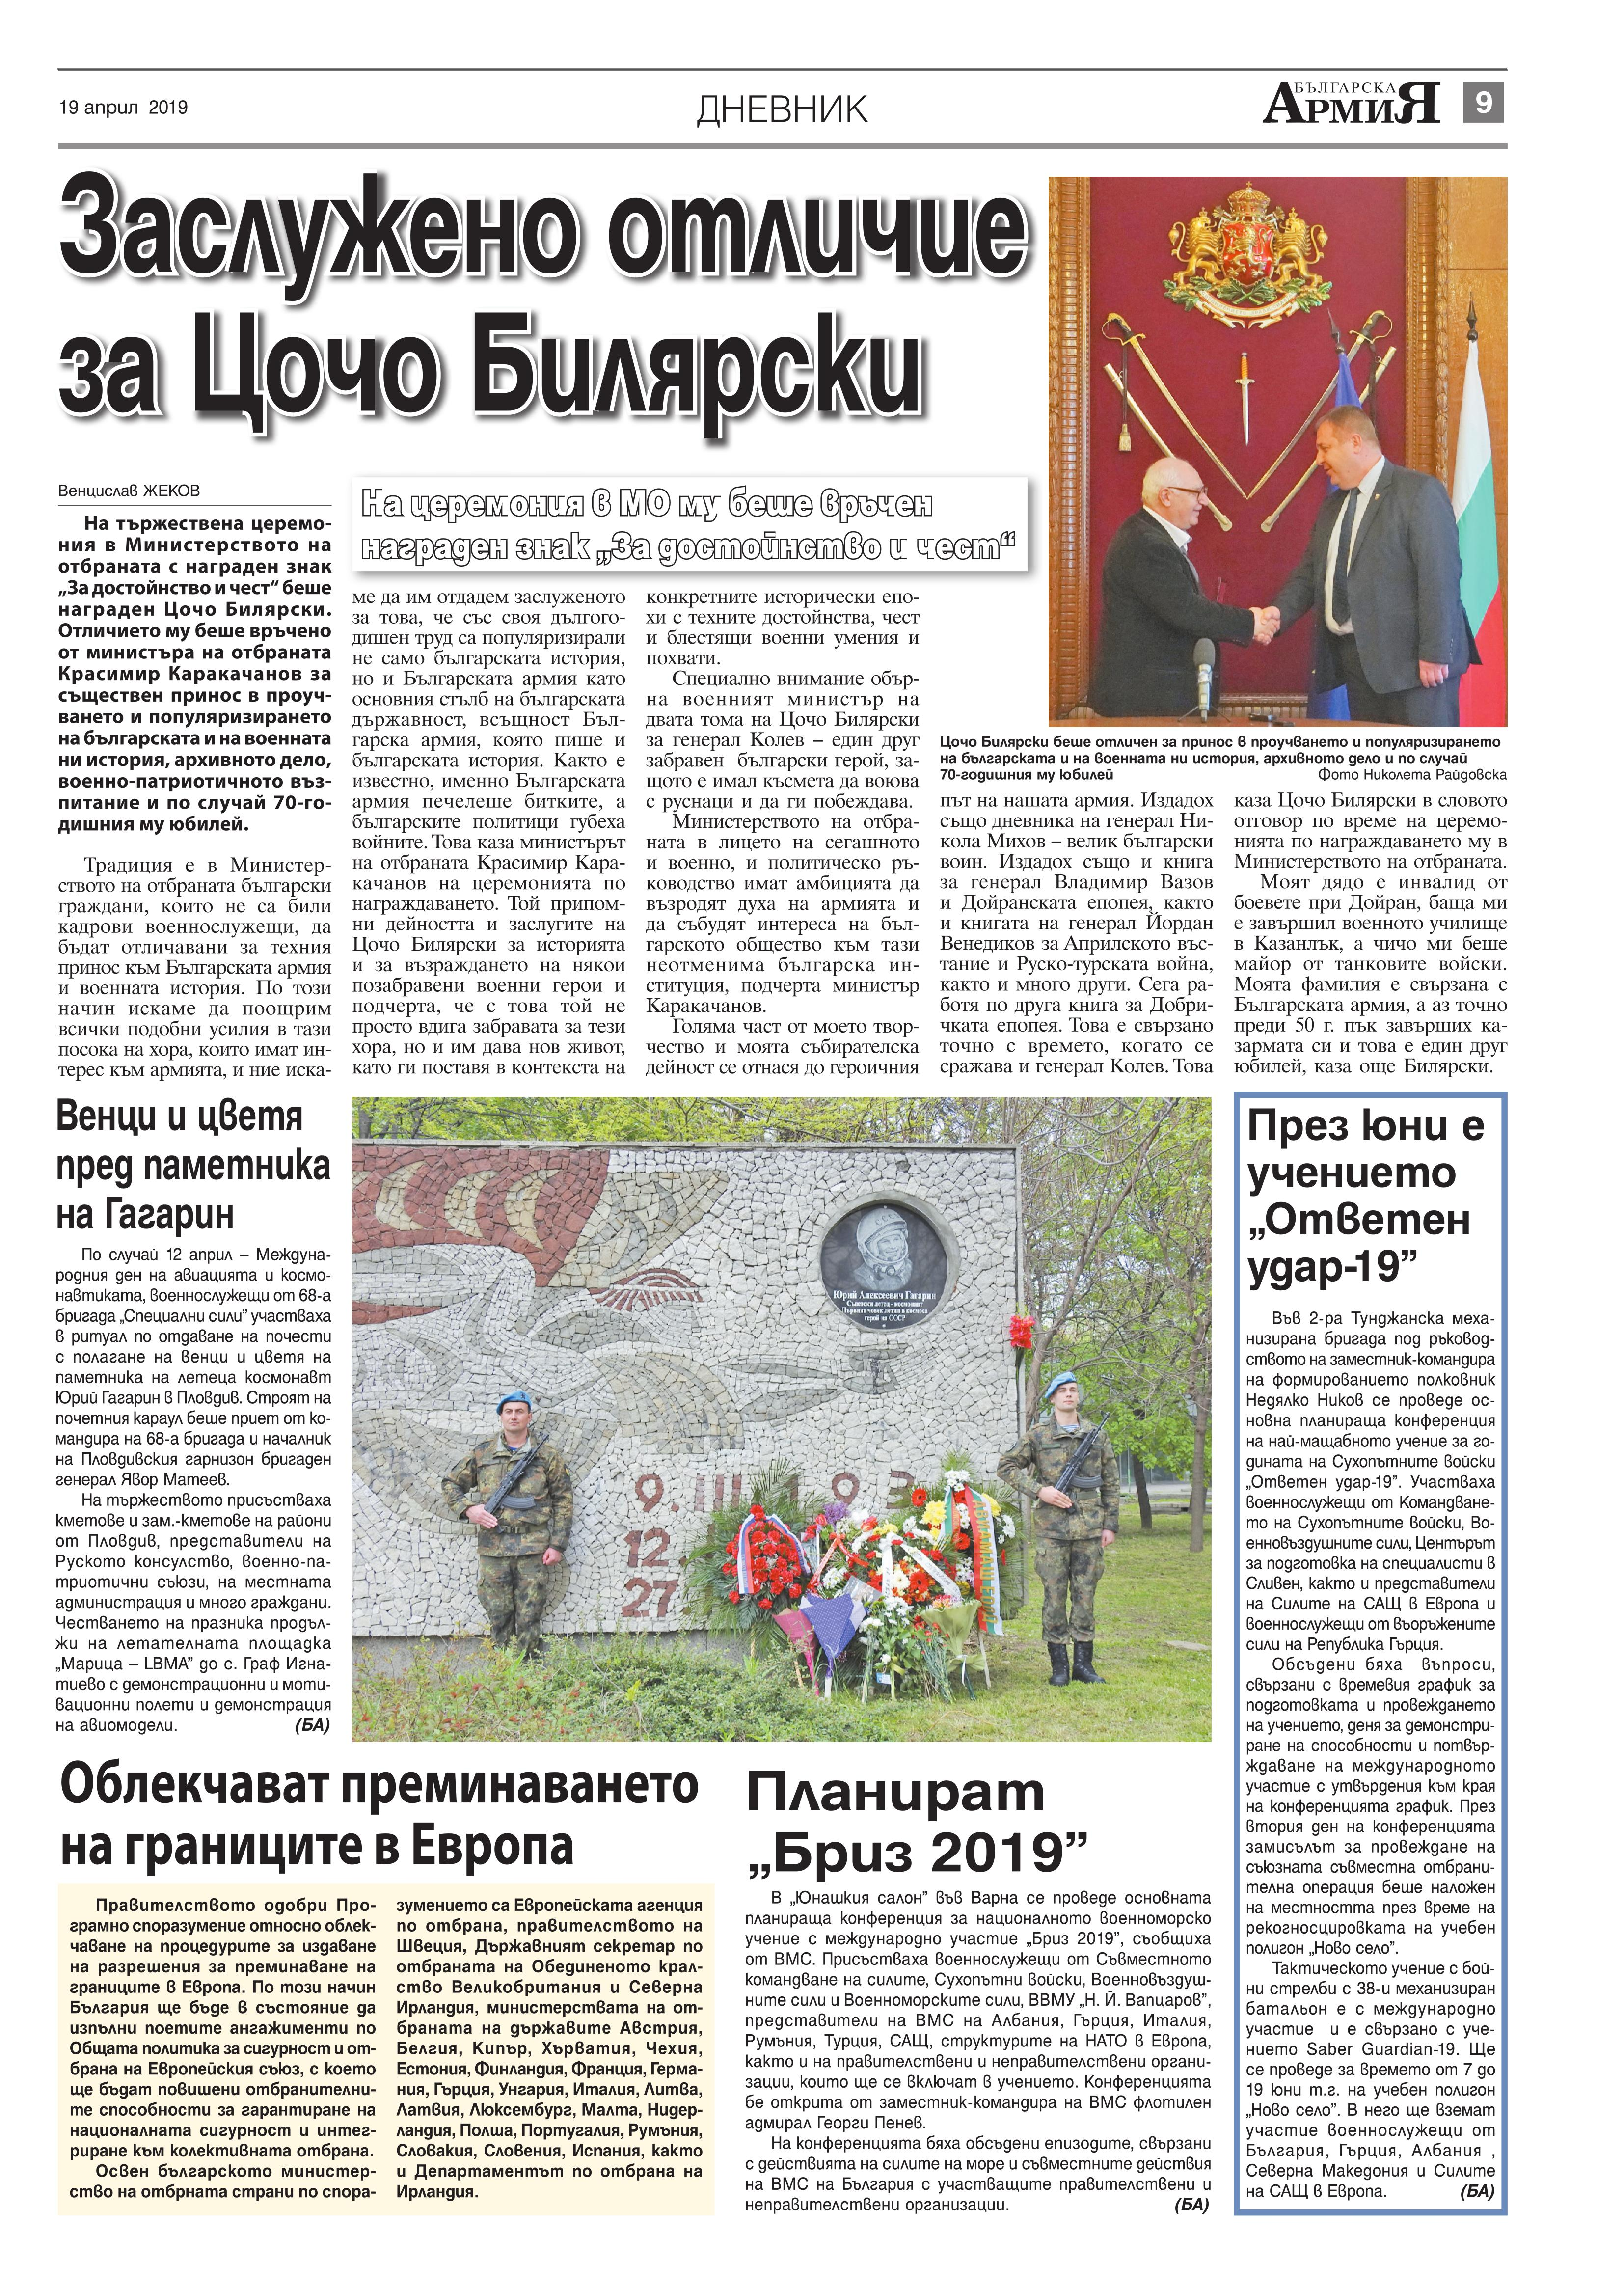 https://www.armymedia.bg/wp-content/uploads/2015/06/09.page1_-90.jpg